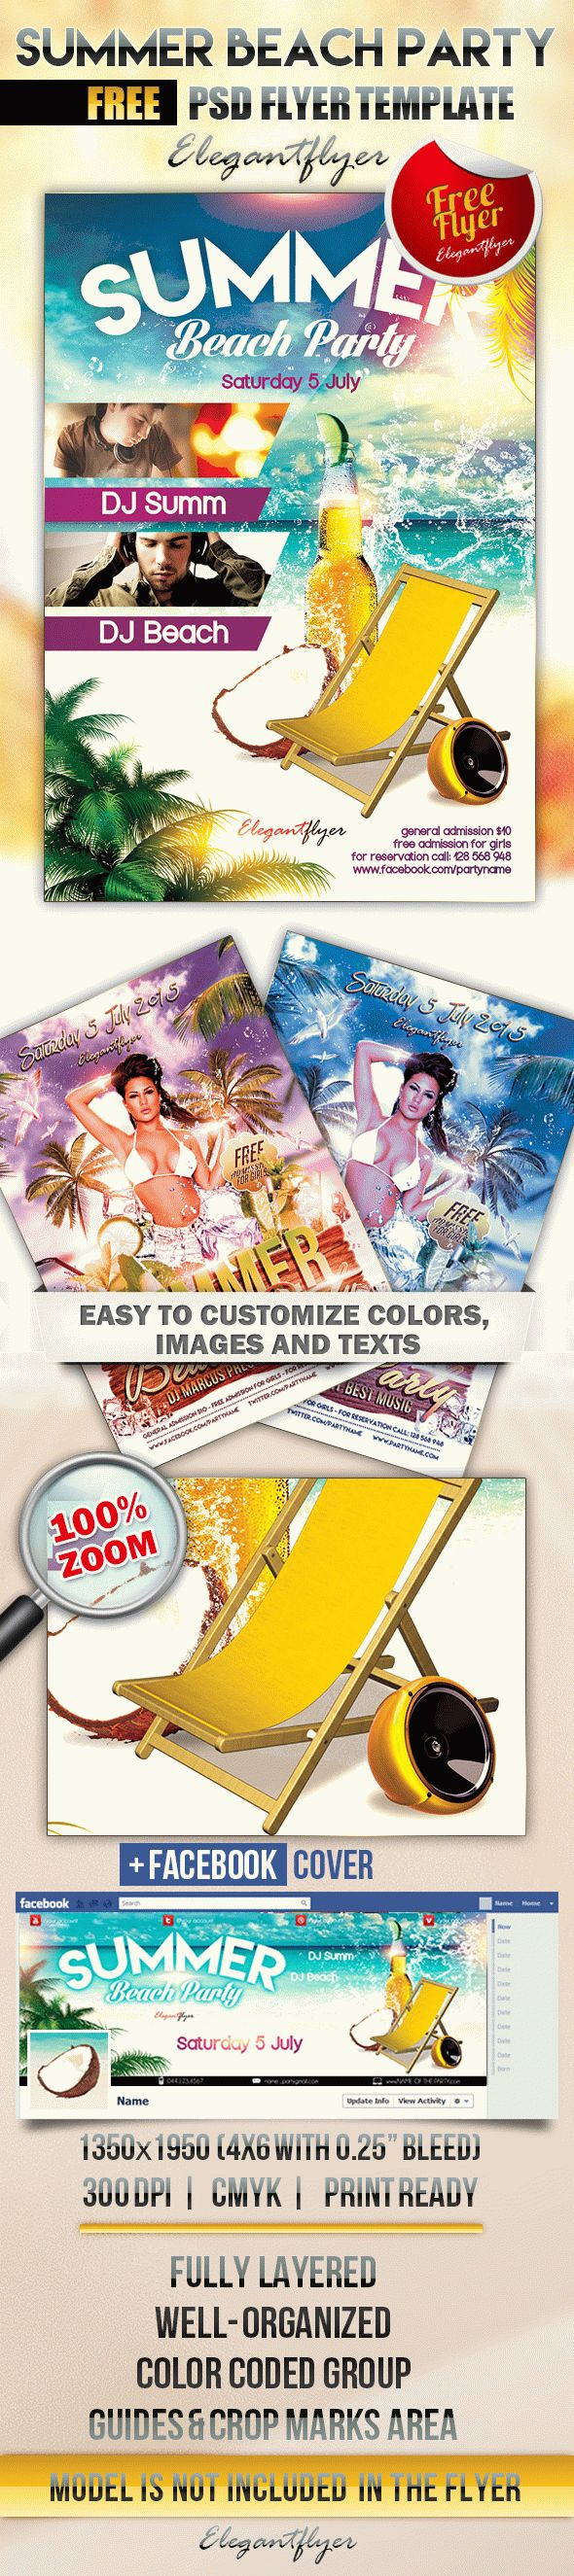 Summer Beach Party – Free Flyer PSD Template